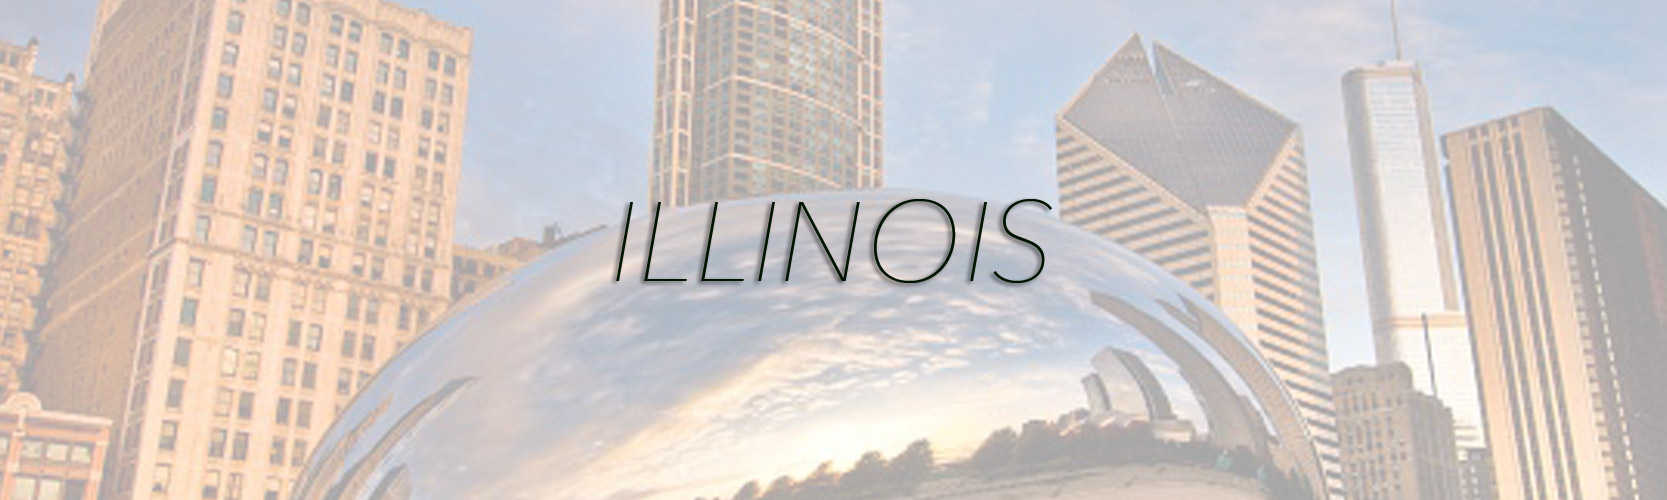 Shipping Futons, Sofa Beds, and Other Futon Shop products to Illinois